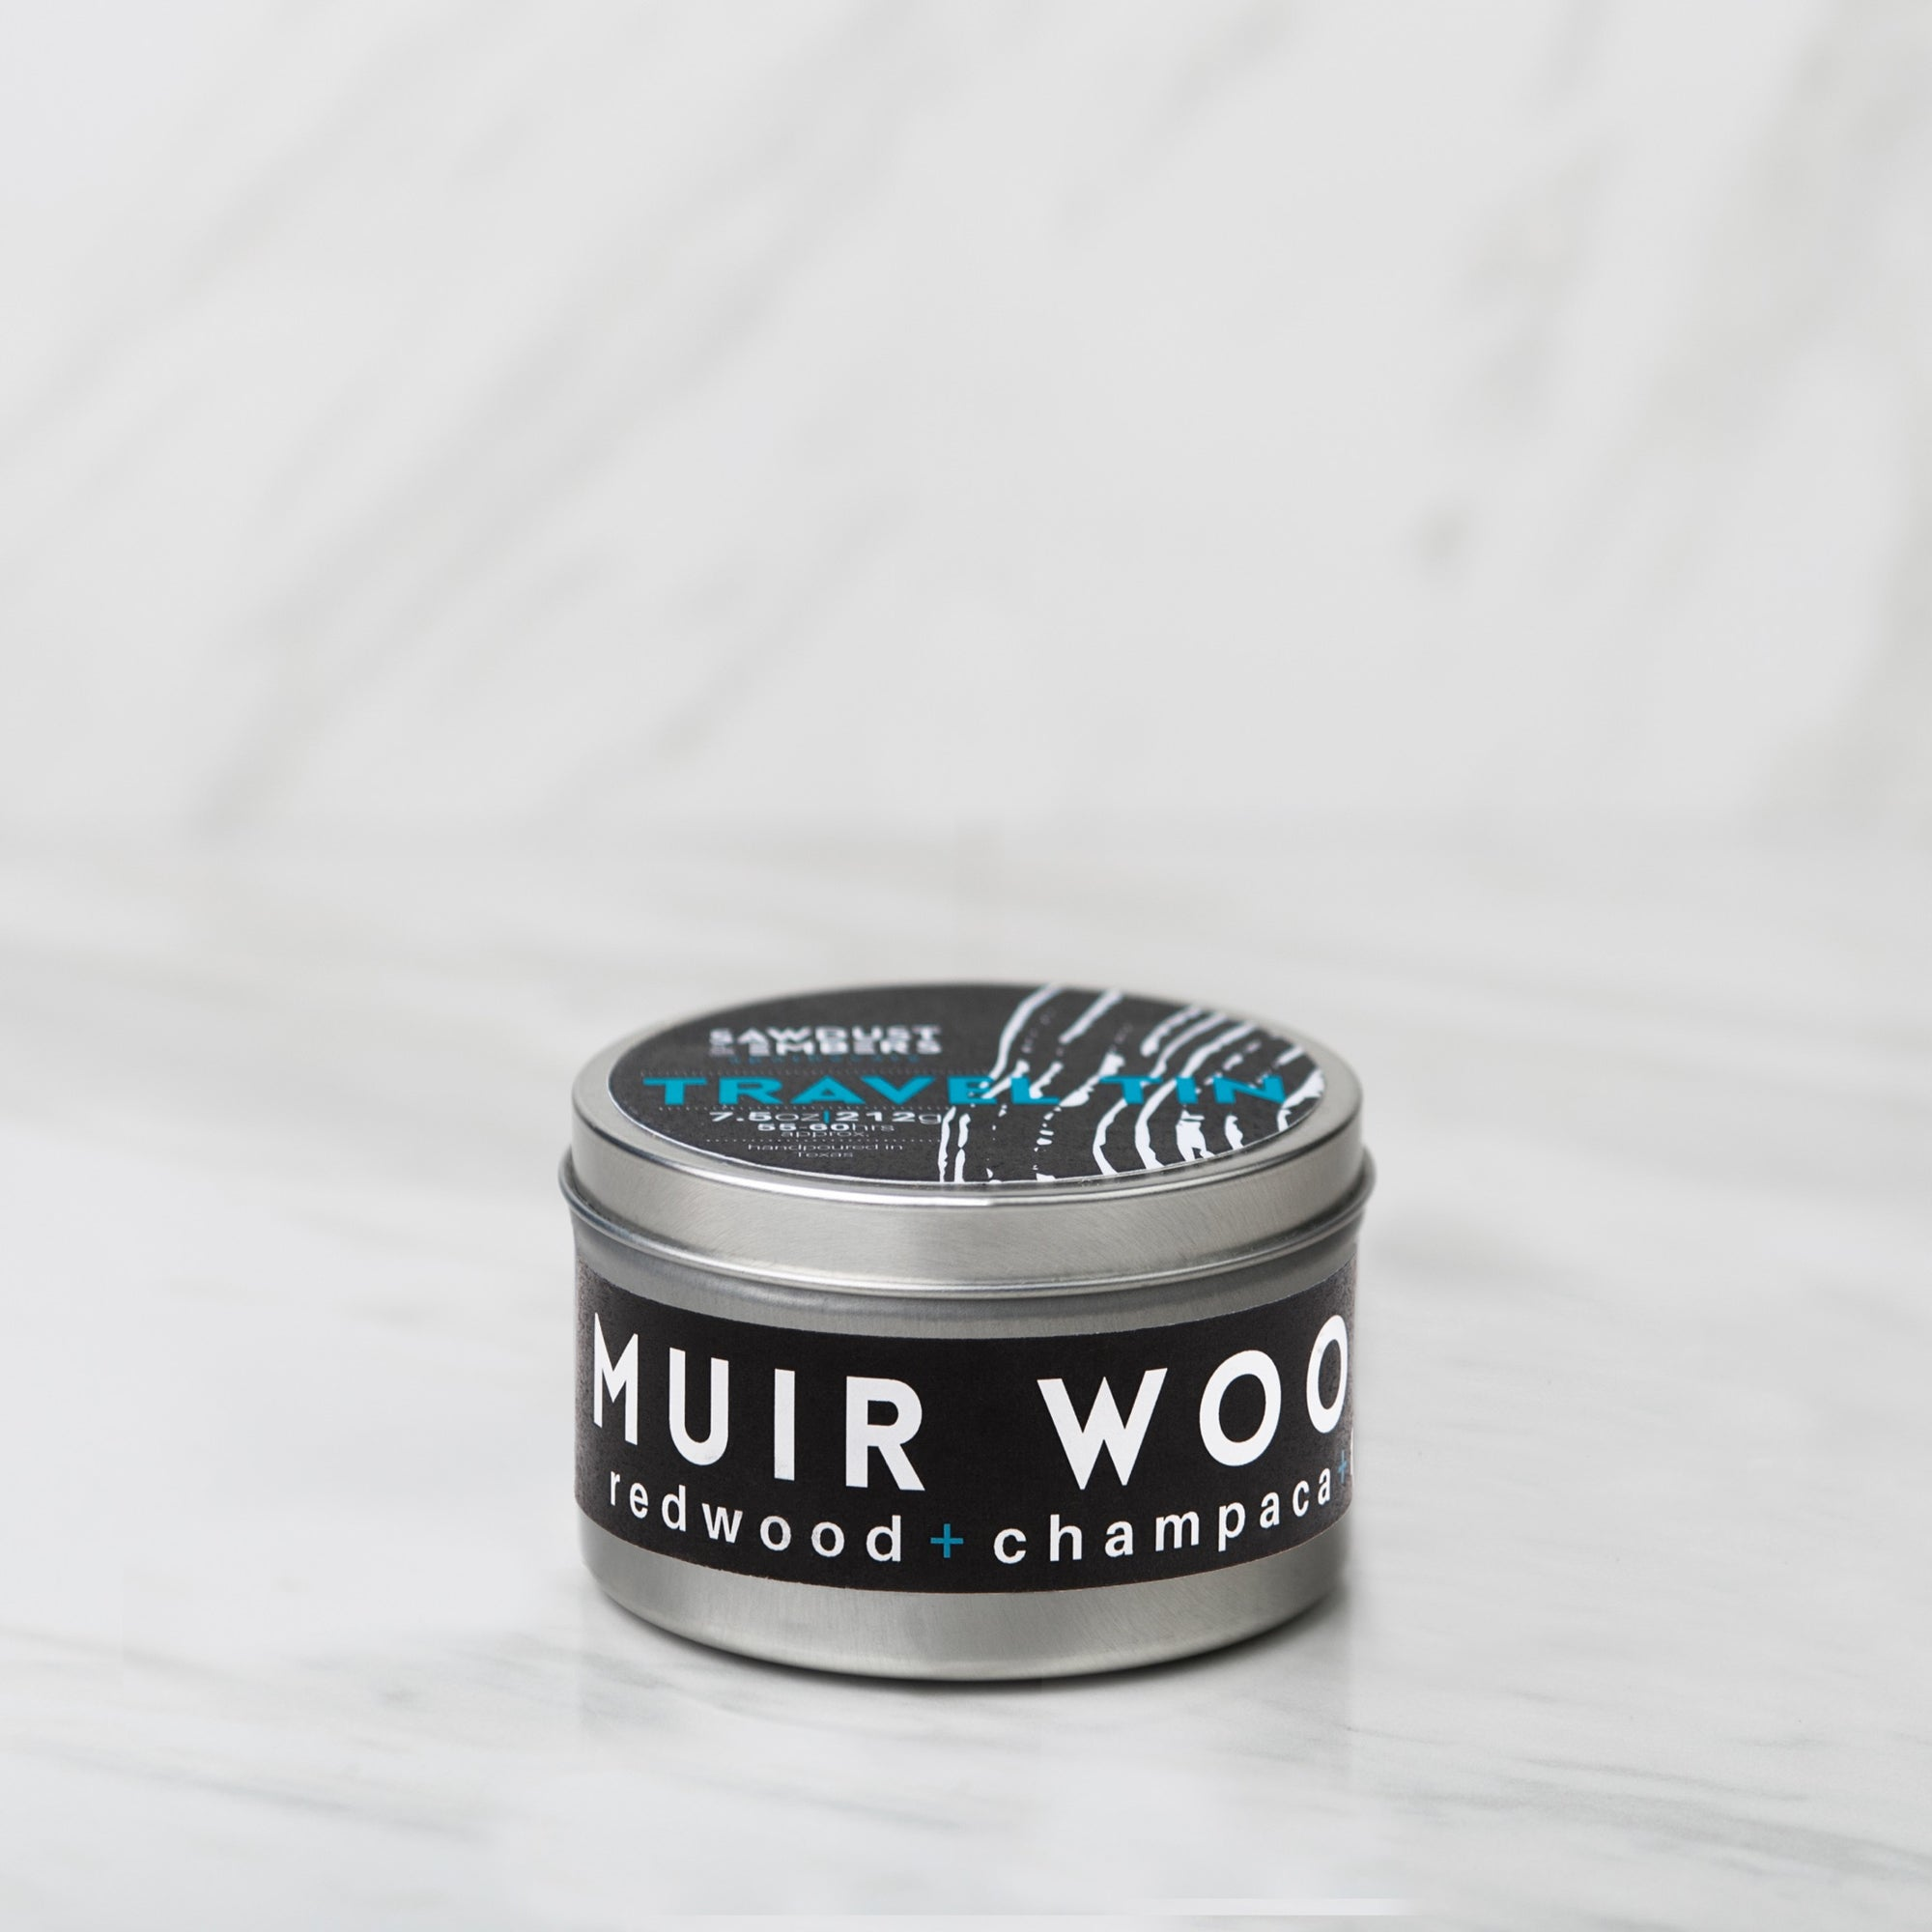 Muir Woods Travel Candle